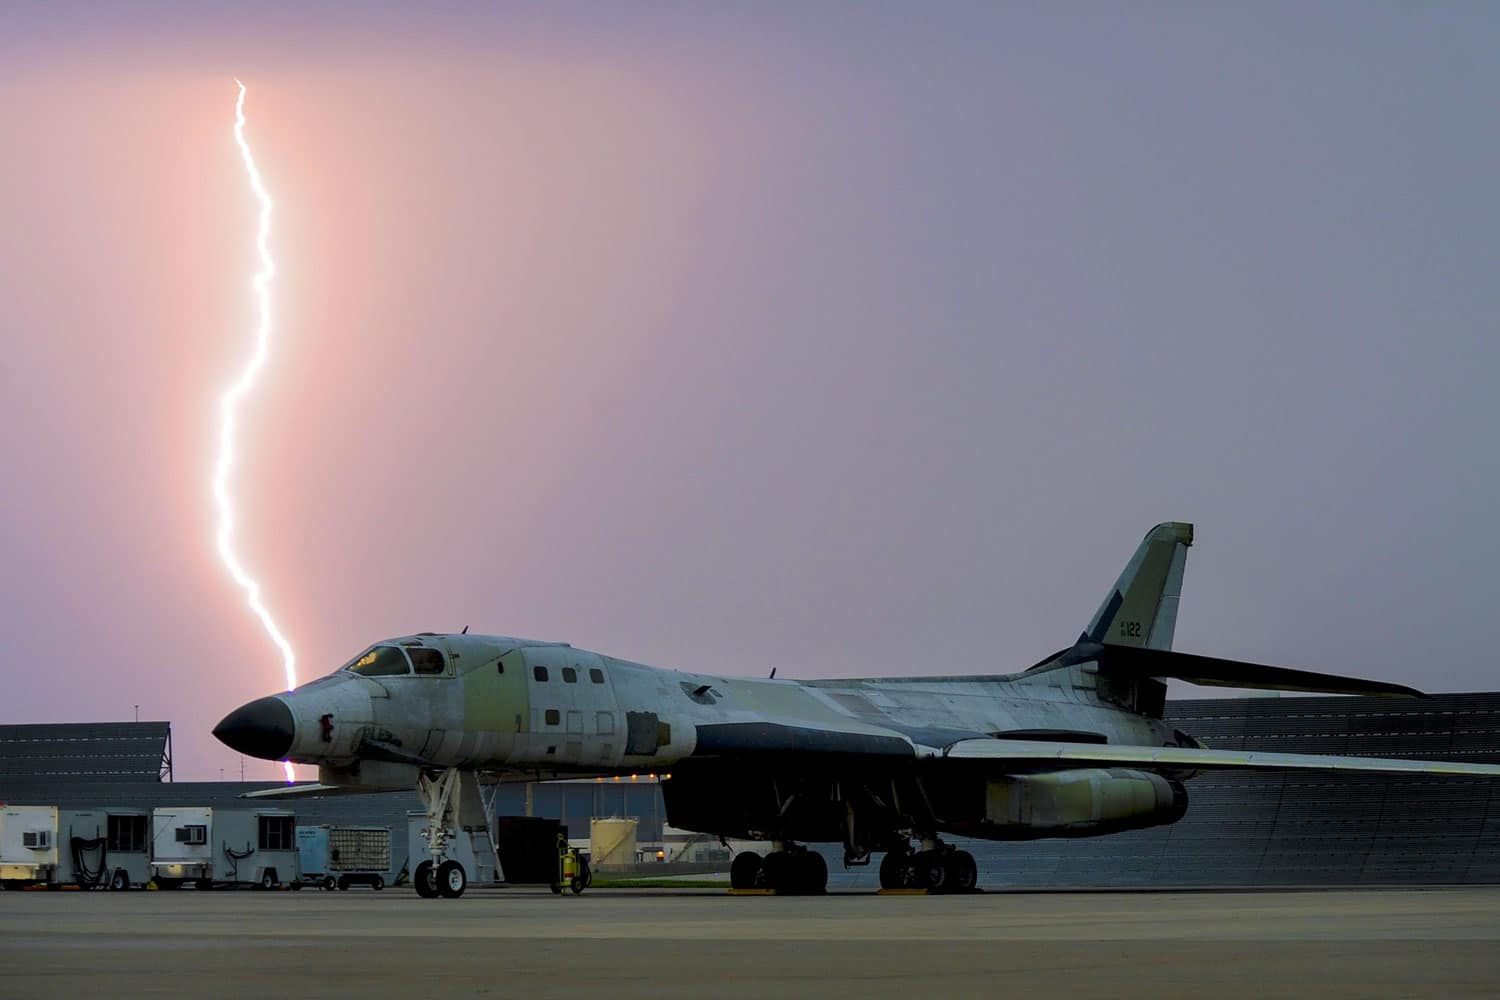 Lightning strikes behind a B-1B Lancer parked on the flight line as a major storm approaches Tinker Air Force Base, Okla. May 18, 2017. The B-1B is at Tinker AFB undergoing depot level maintenance and has been stripped of the majority of its paint.